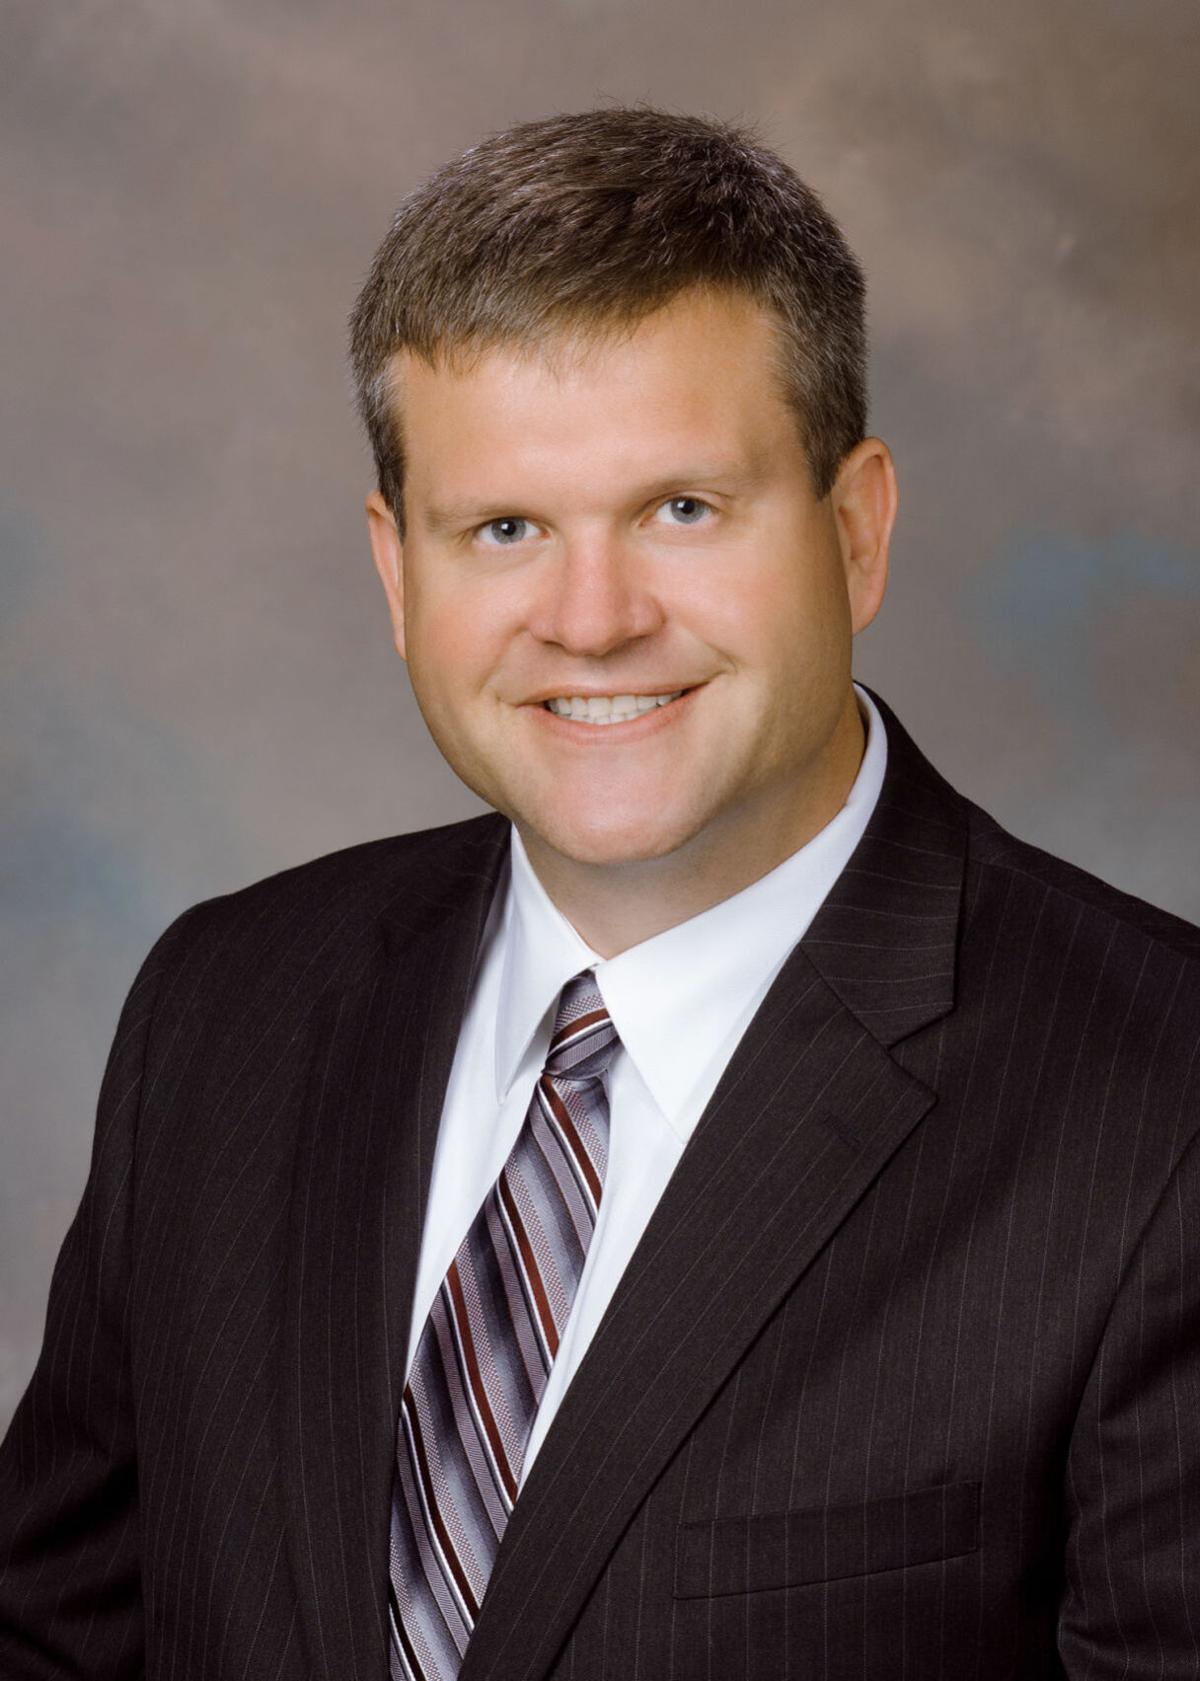 John Stone is president of Joyner Fine Properties and is executive vice president of financial services for the Virginia Credit Union.